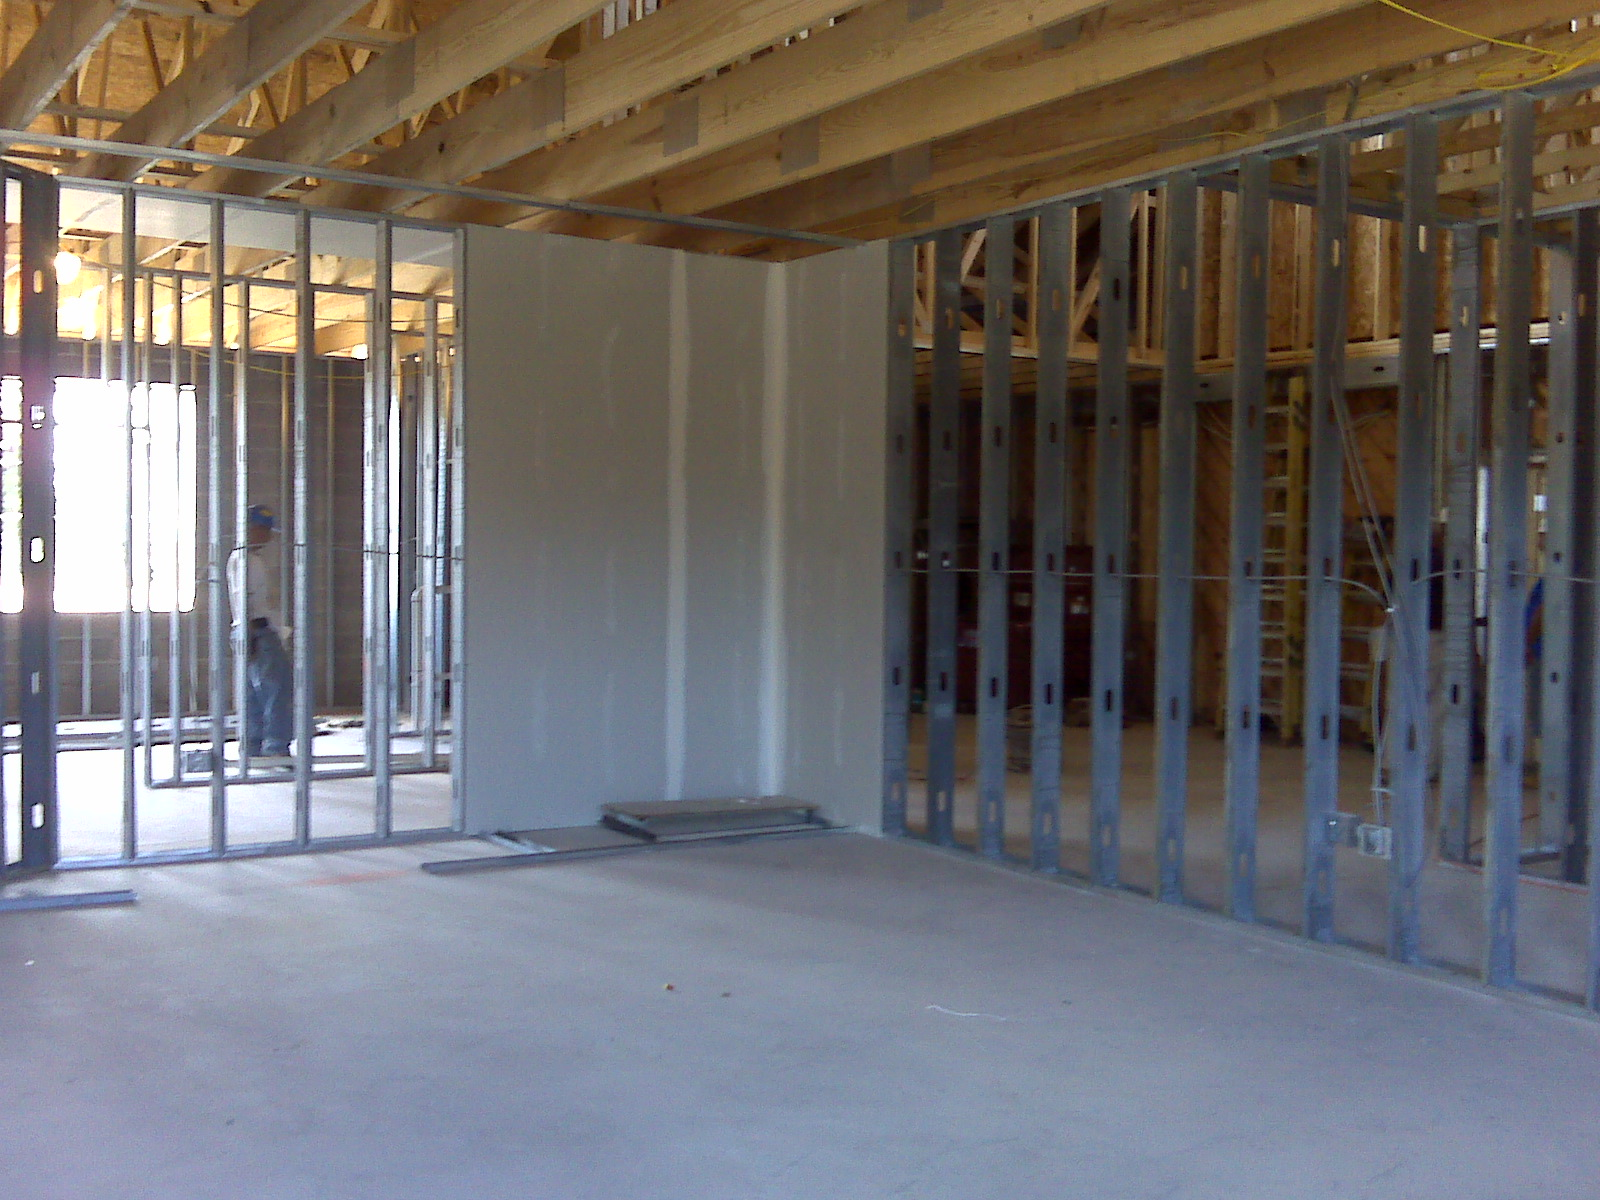 Dry Wall Construction : St john s school rebuild and renovate construction